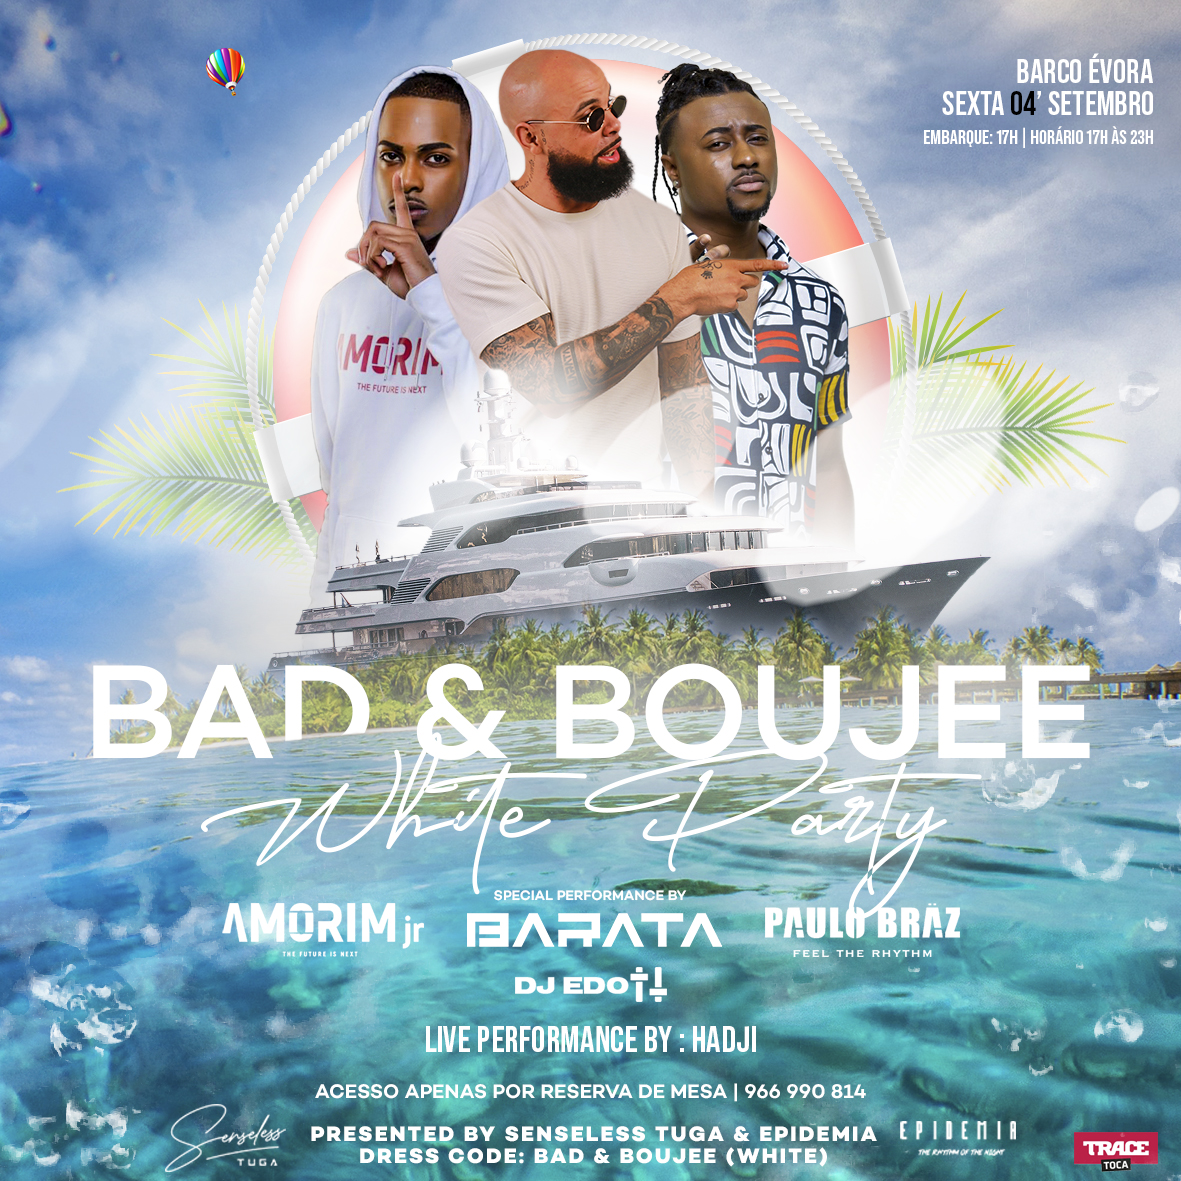 BAD & BOUJE FLYER ARTWORK